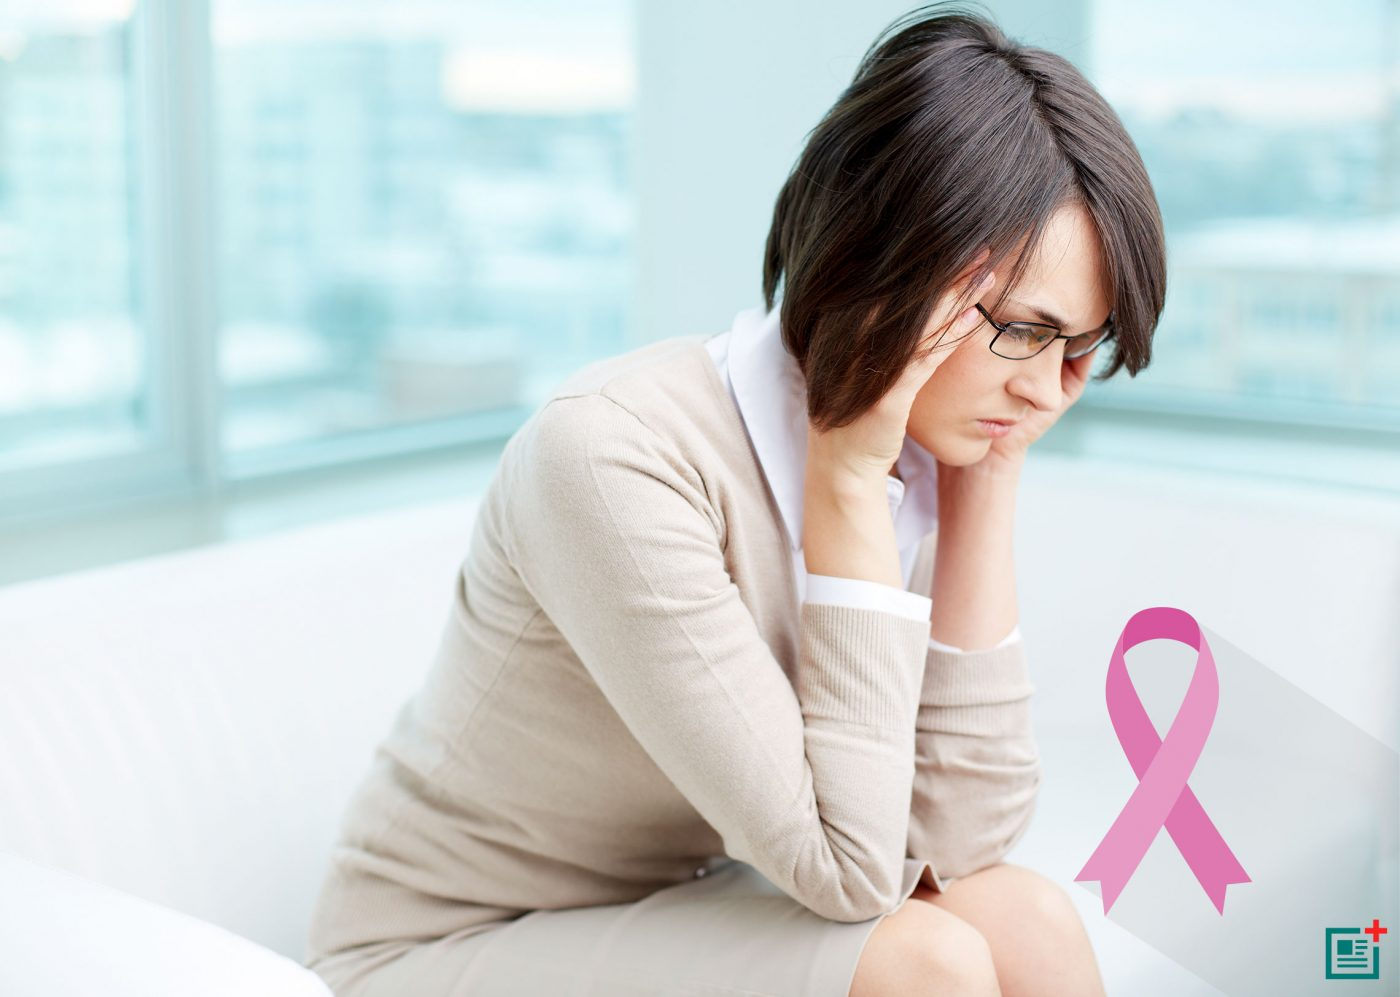 breast cancer and stress Lean about the astonishing link between stress and cancer, and how by resolving this stress it is possible to start healing the cancer.